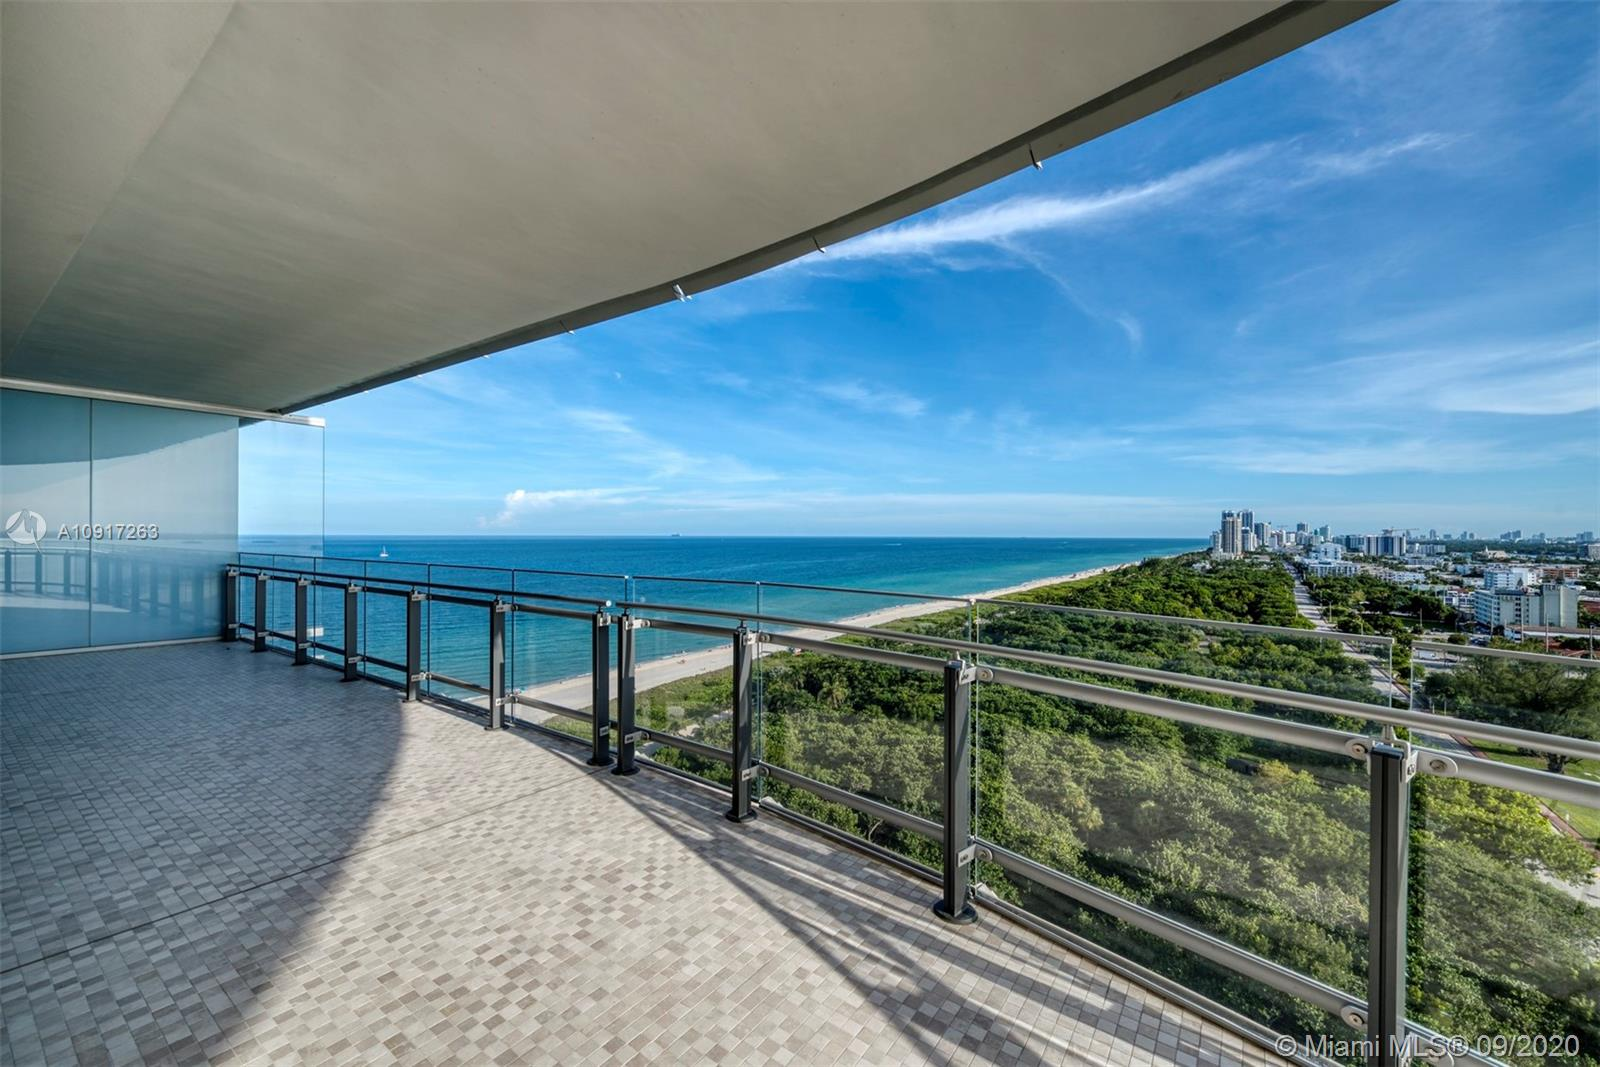 8701 Collins Ave, Unit #1505 Luxury Real Estate